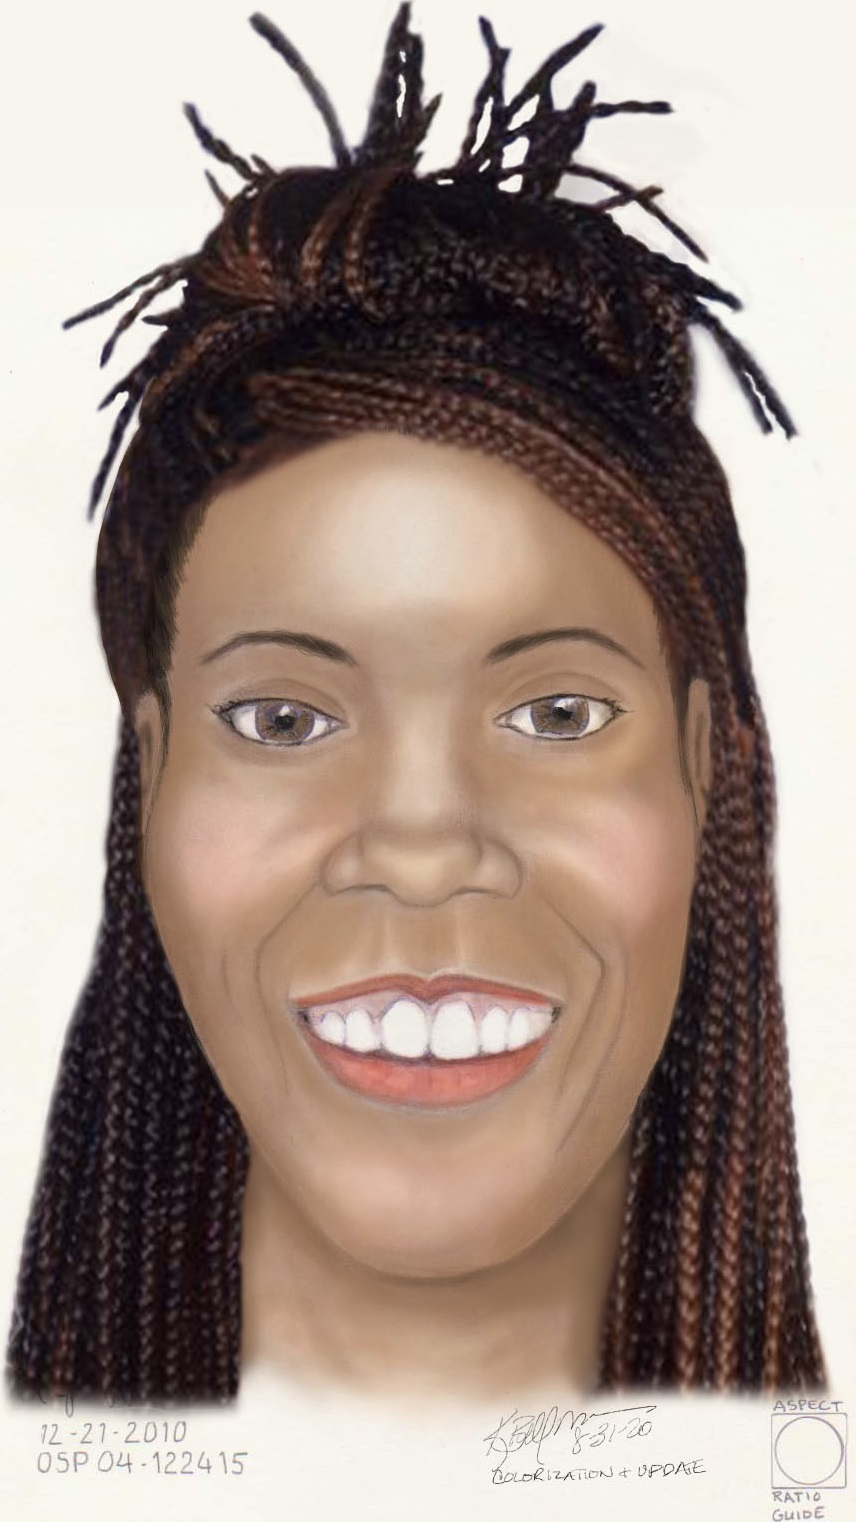 Klamath County Jane Doe